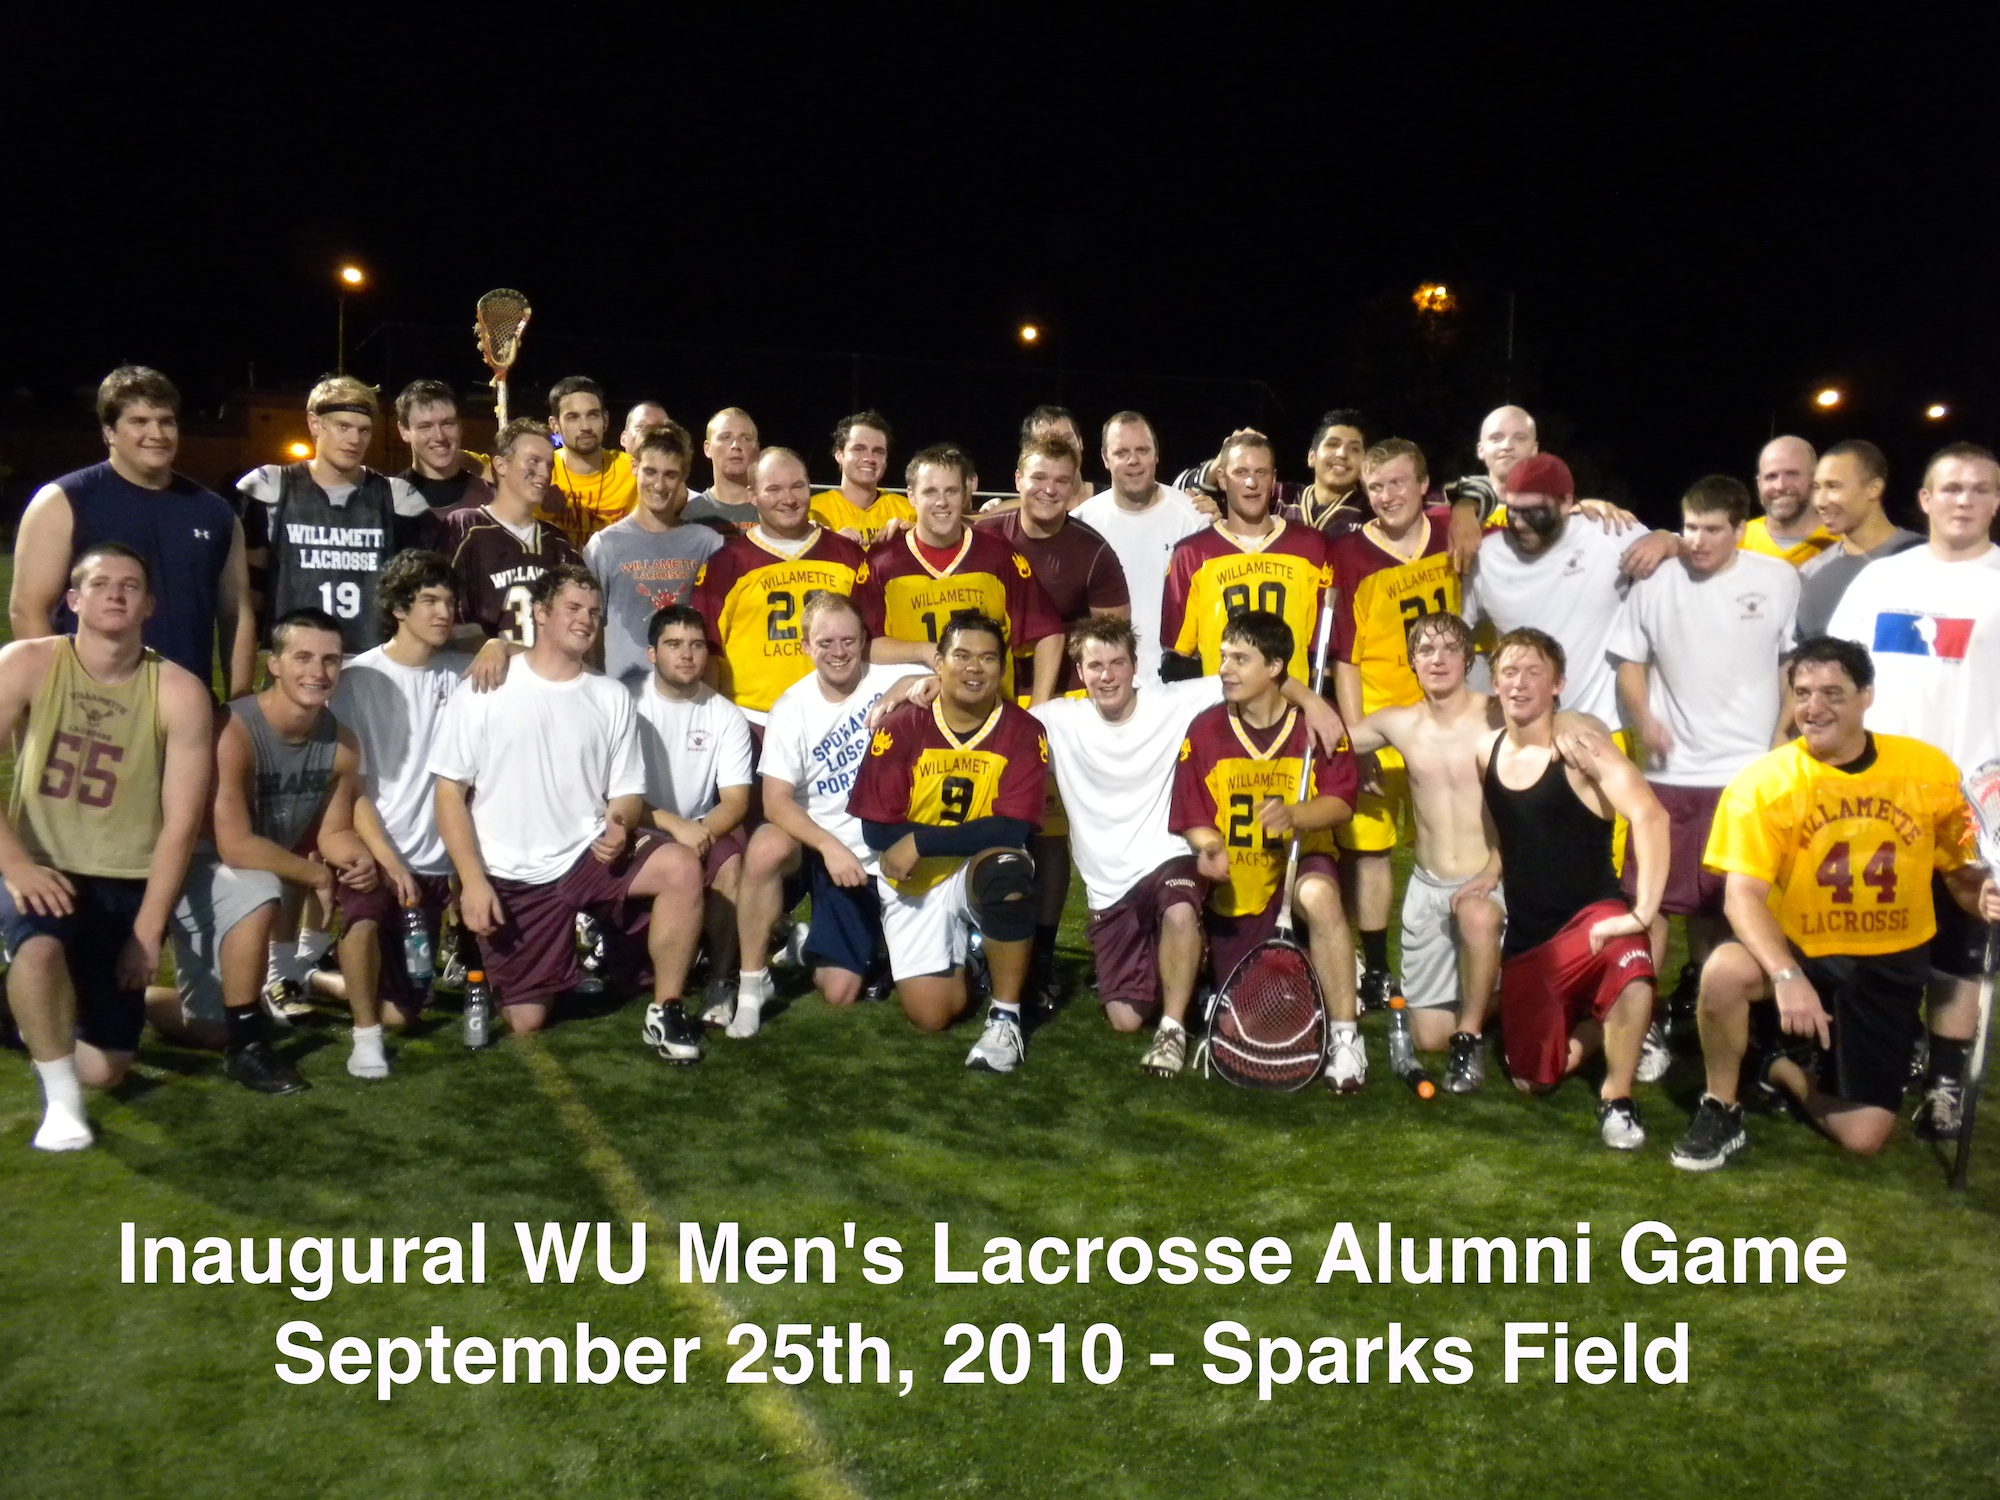 Alumni and playes at Inaugural Alumni Game in 2010